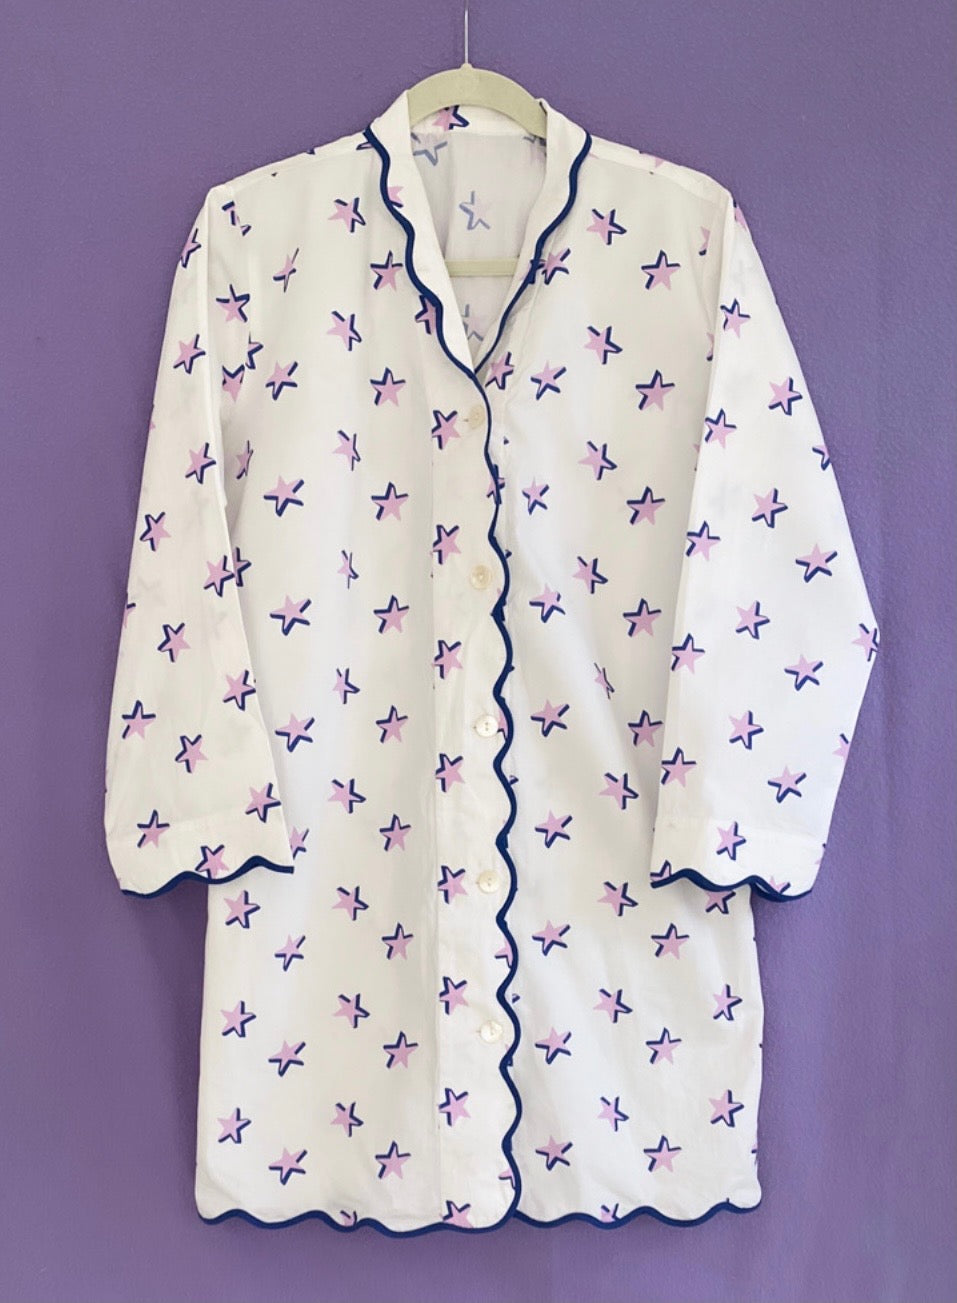 Lavender and Navy Star Nightshirts